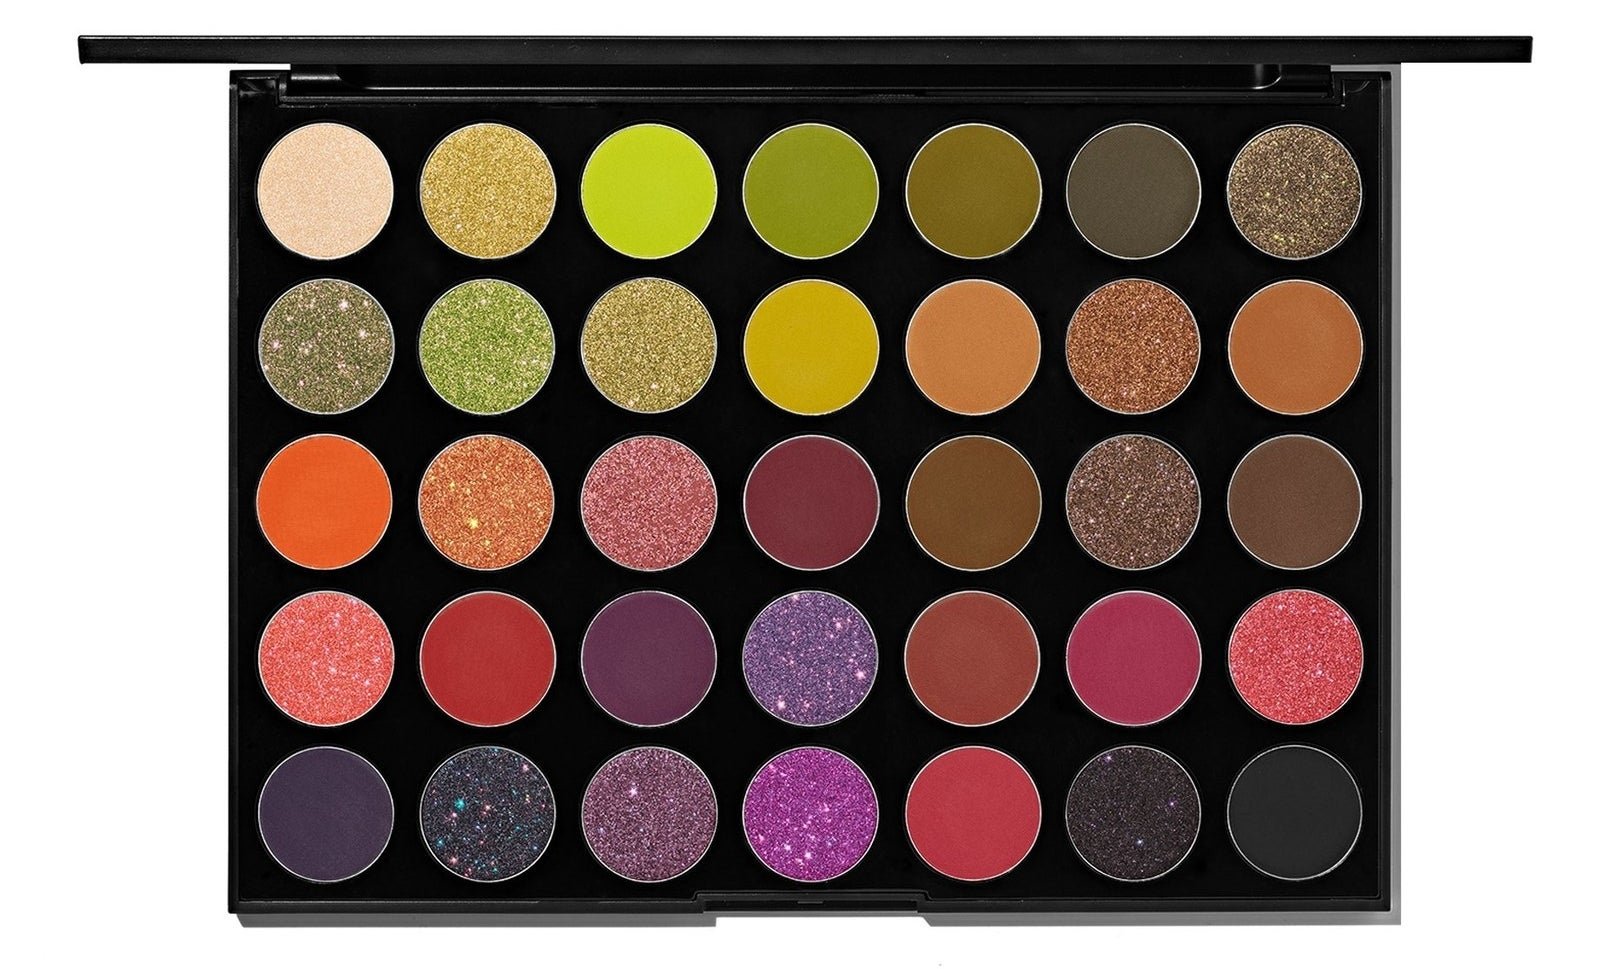 This palette, like most Morphe palettes has super creamy, blendable, and highly-pigmented colors.Get it from Ulta for $24.